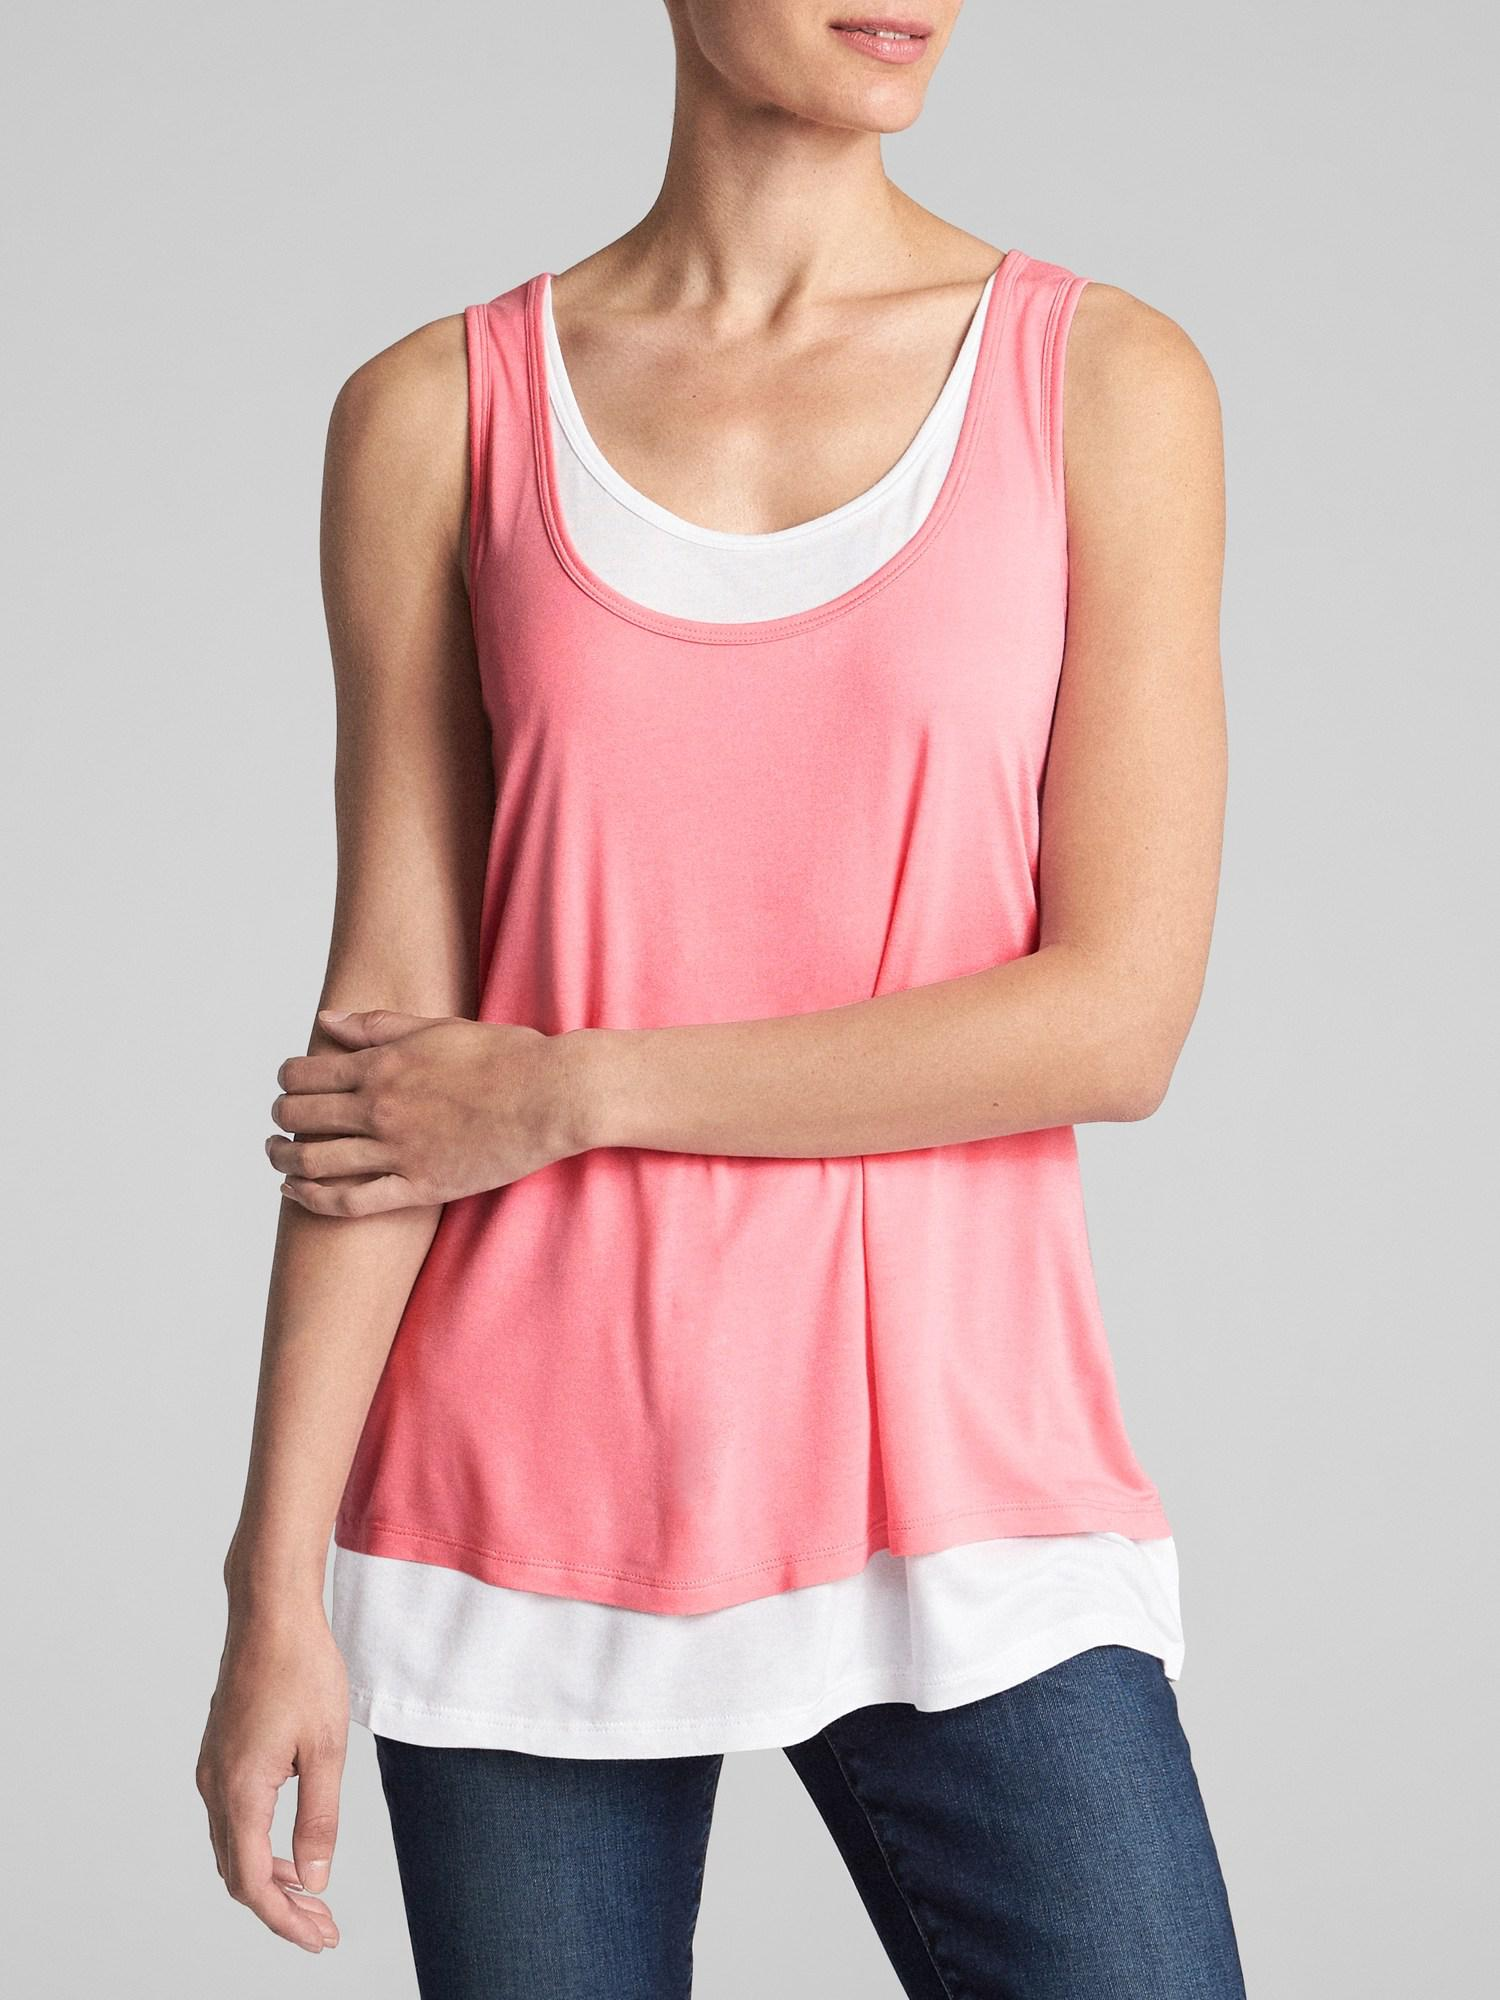 ab79e7b5c14435 Lyst - GAP Factory Maternity Double-layer Nursing Tank Top in Pink